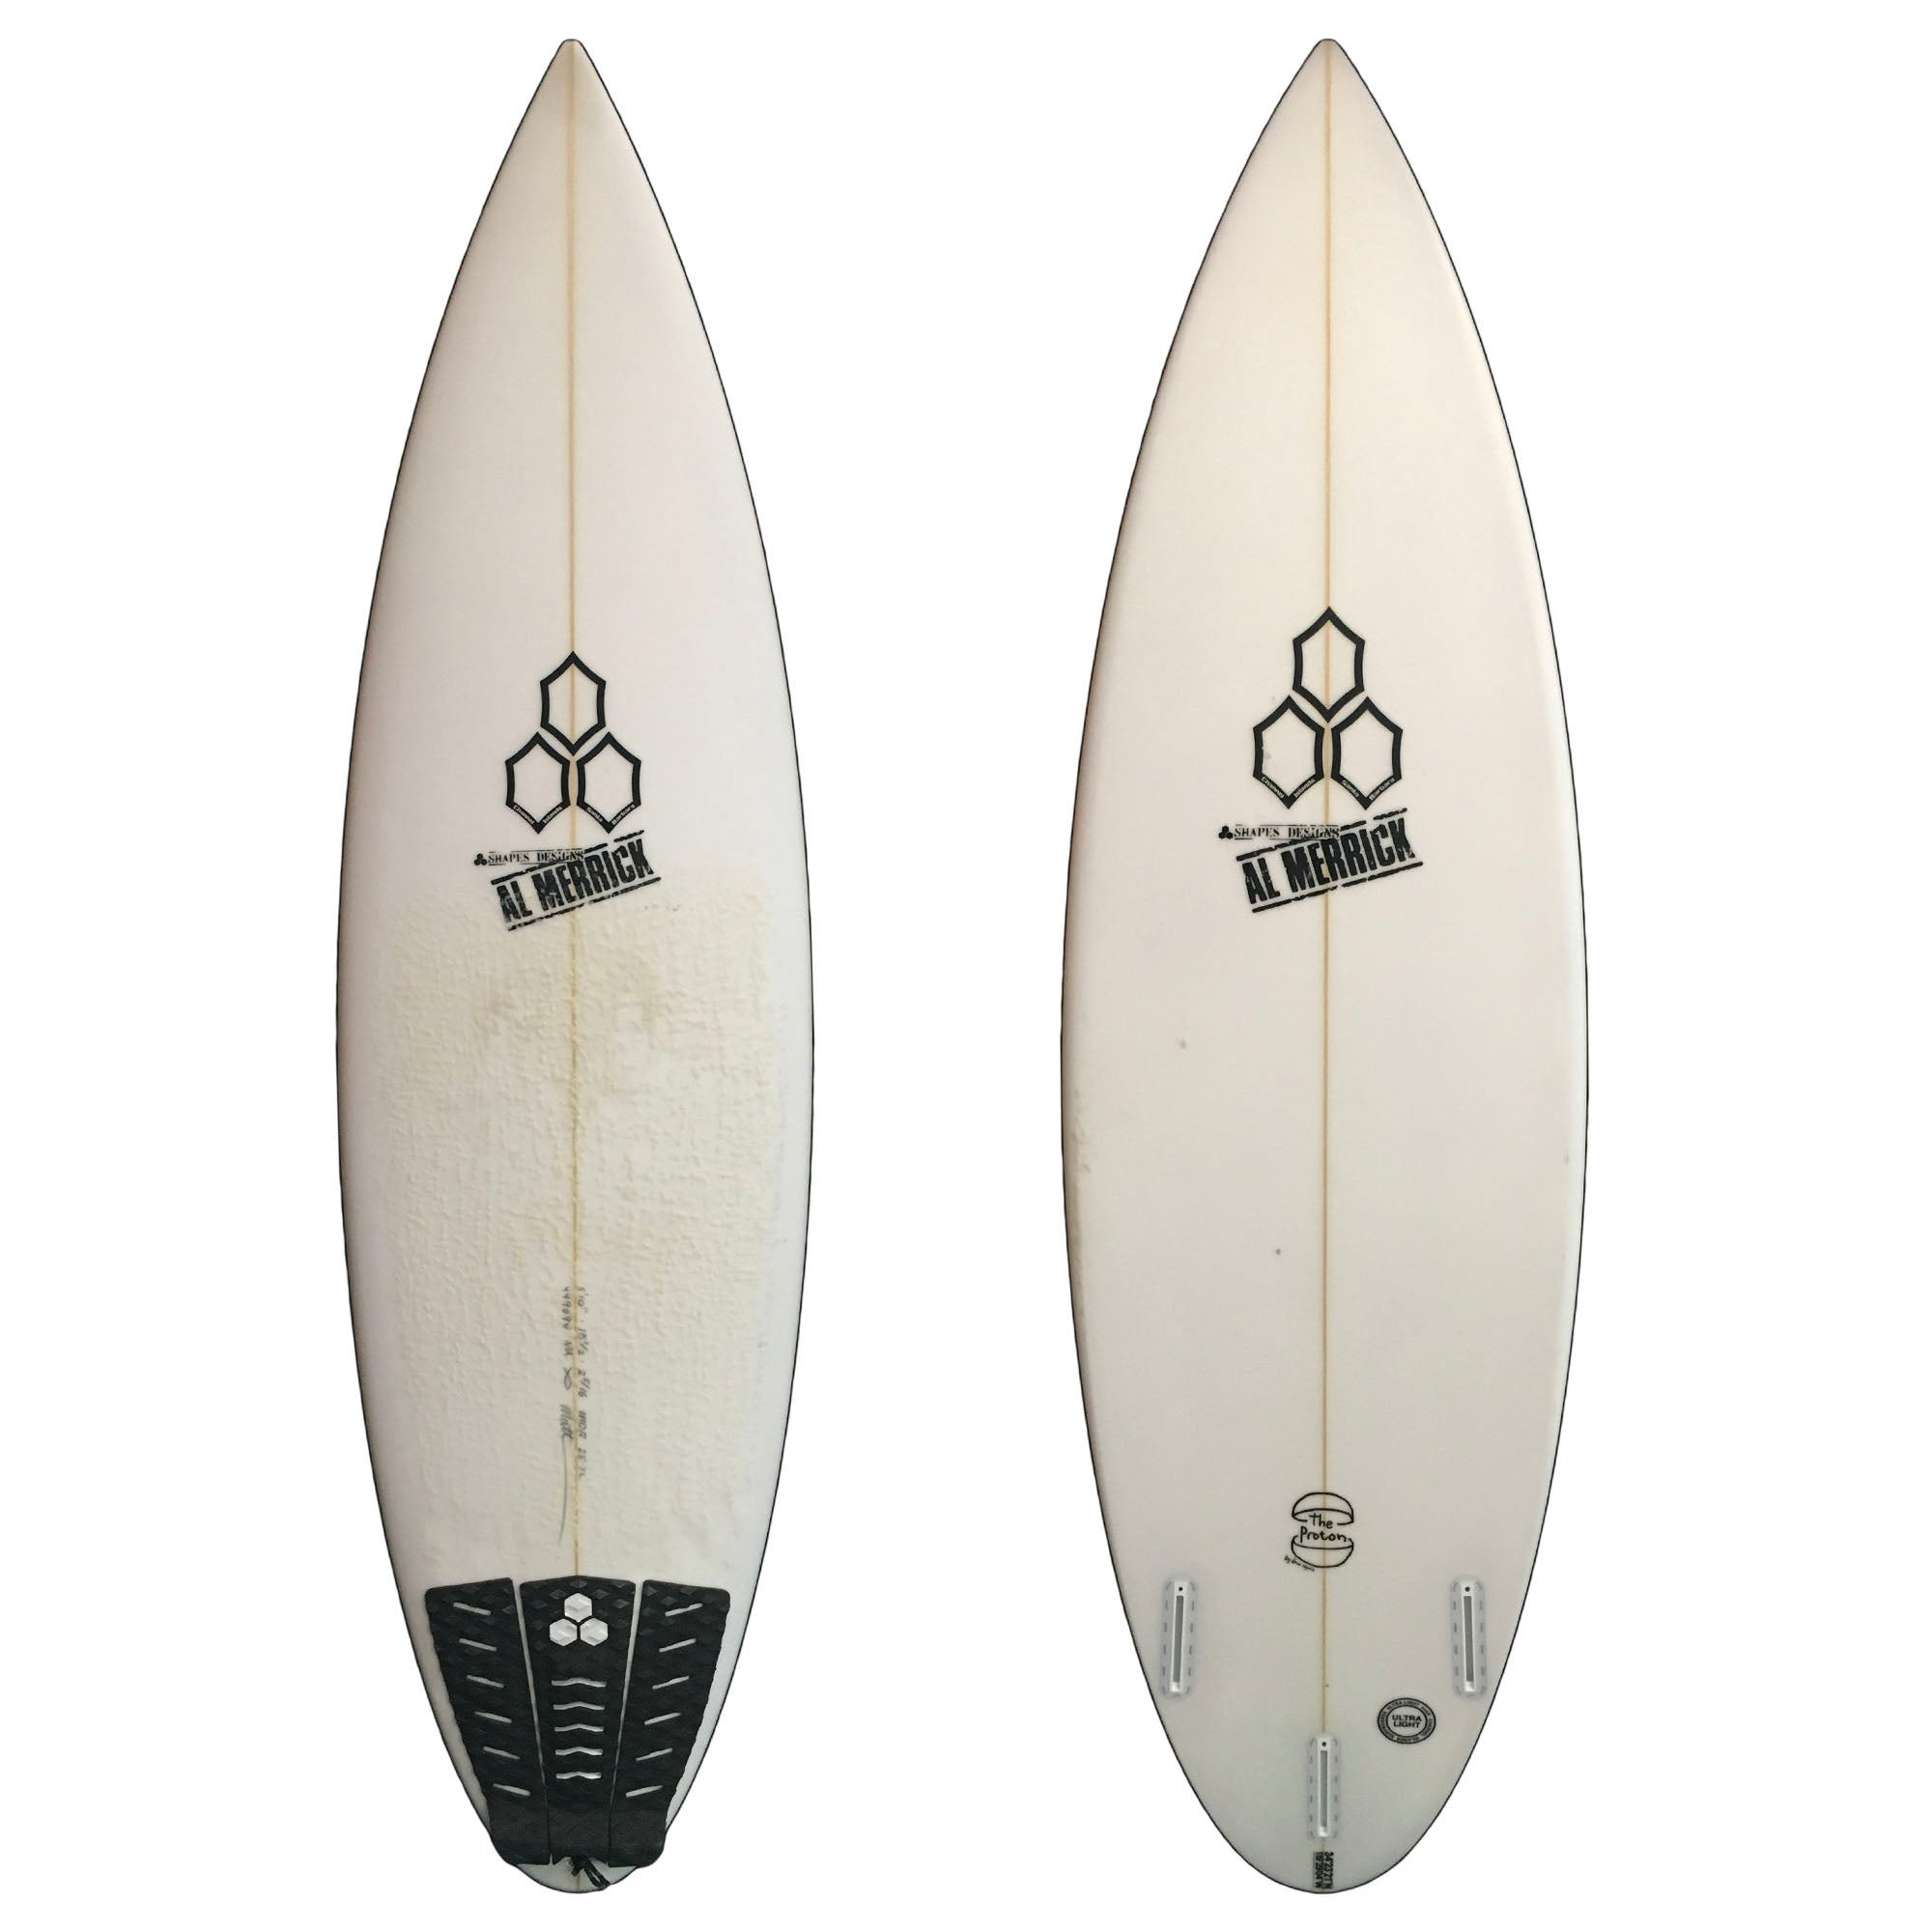 Channel Islands Proton 5'10 Used Surfboard